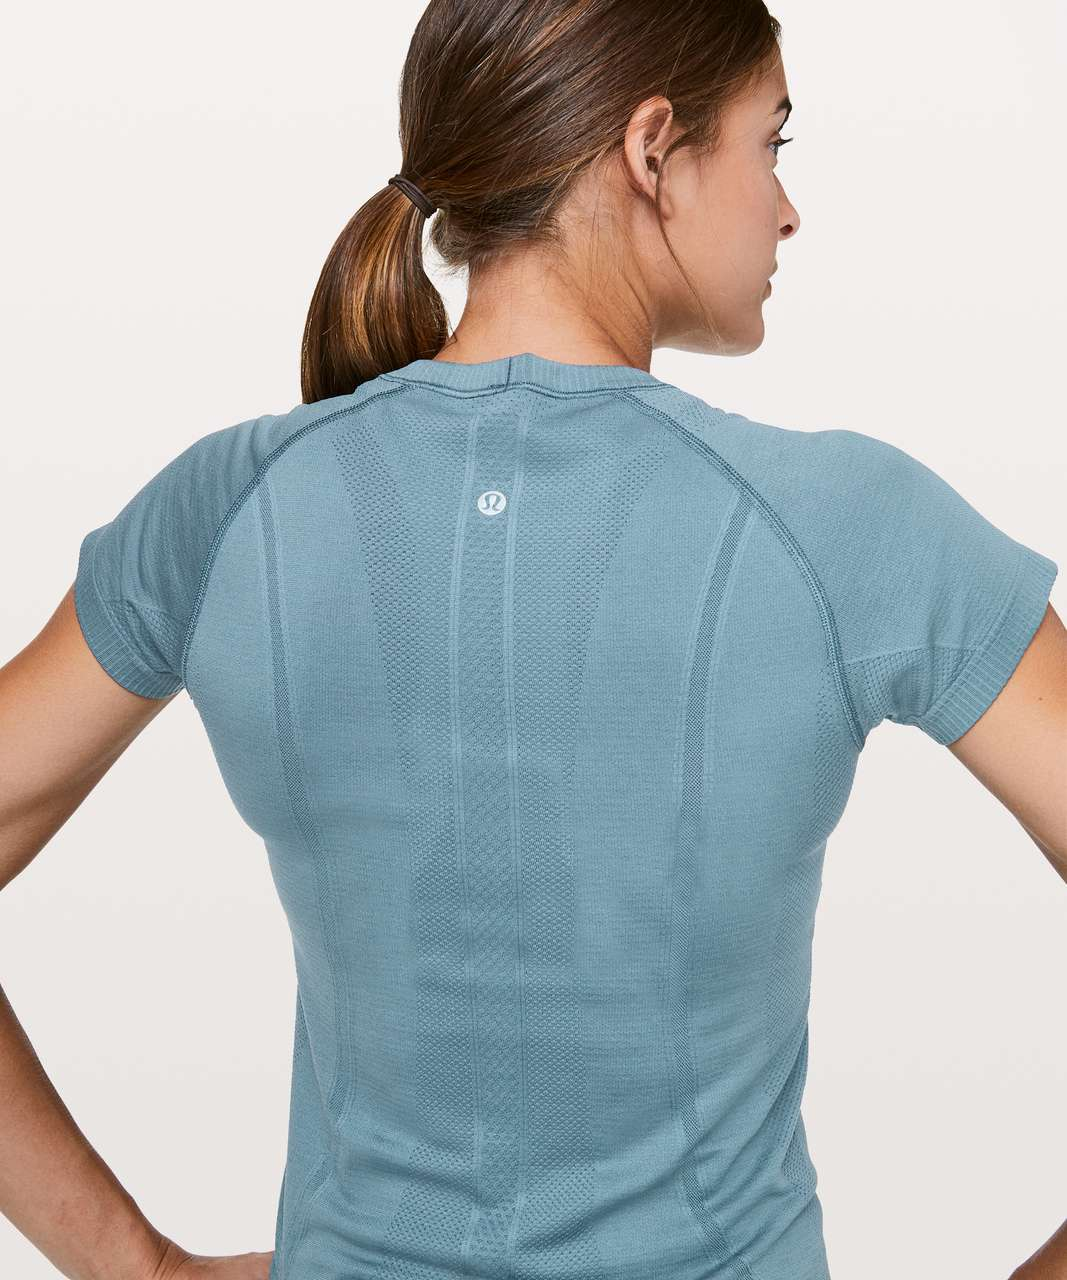 Lululemon Swiftly Tech Short Sleeve Crew - Slate Blue / Slate Blue